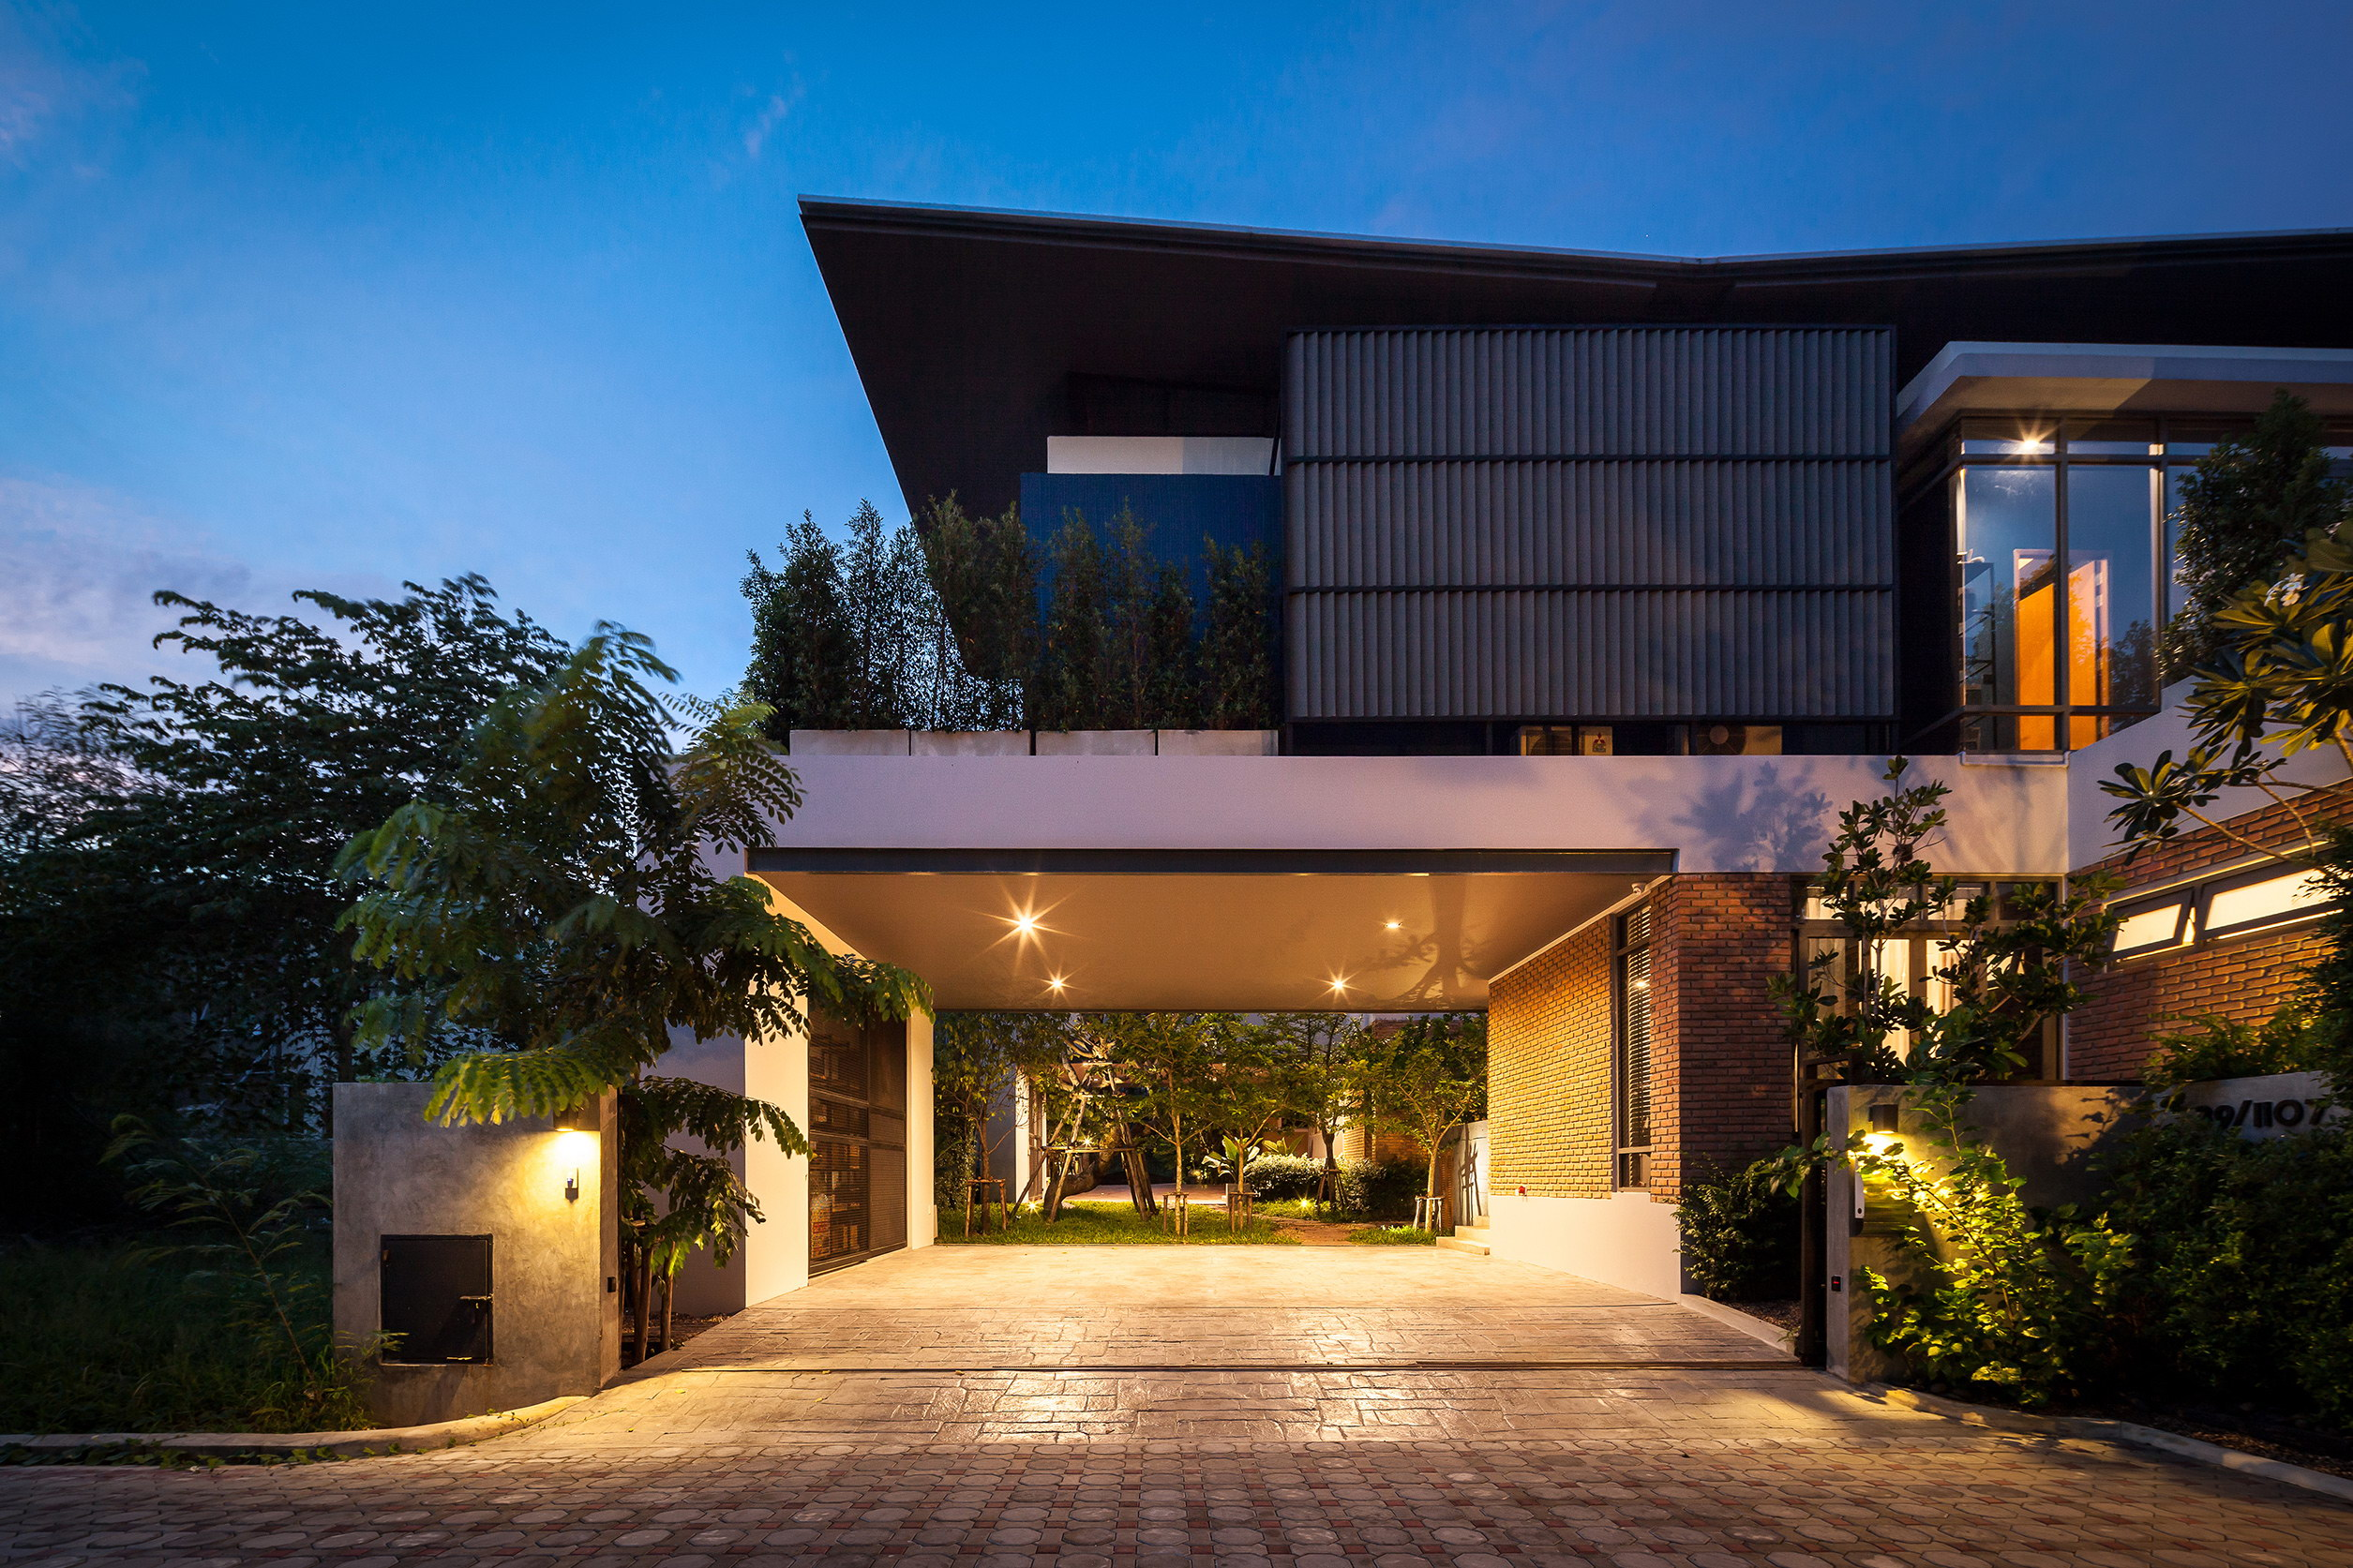 Two Houses at Nichada by Alkhemist Architects